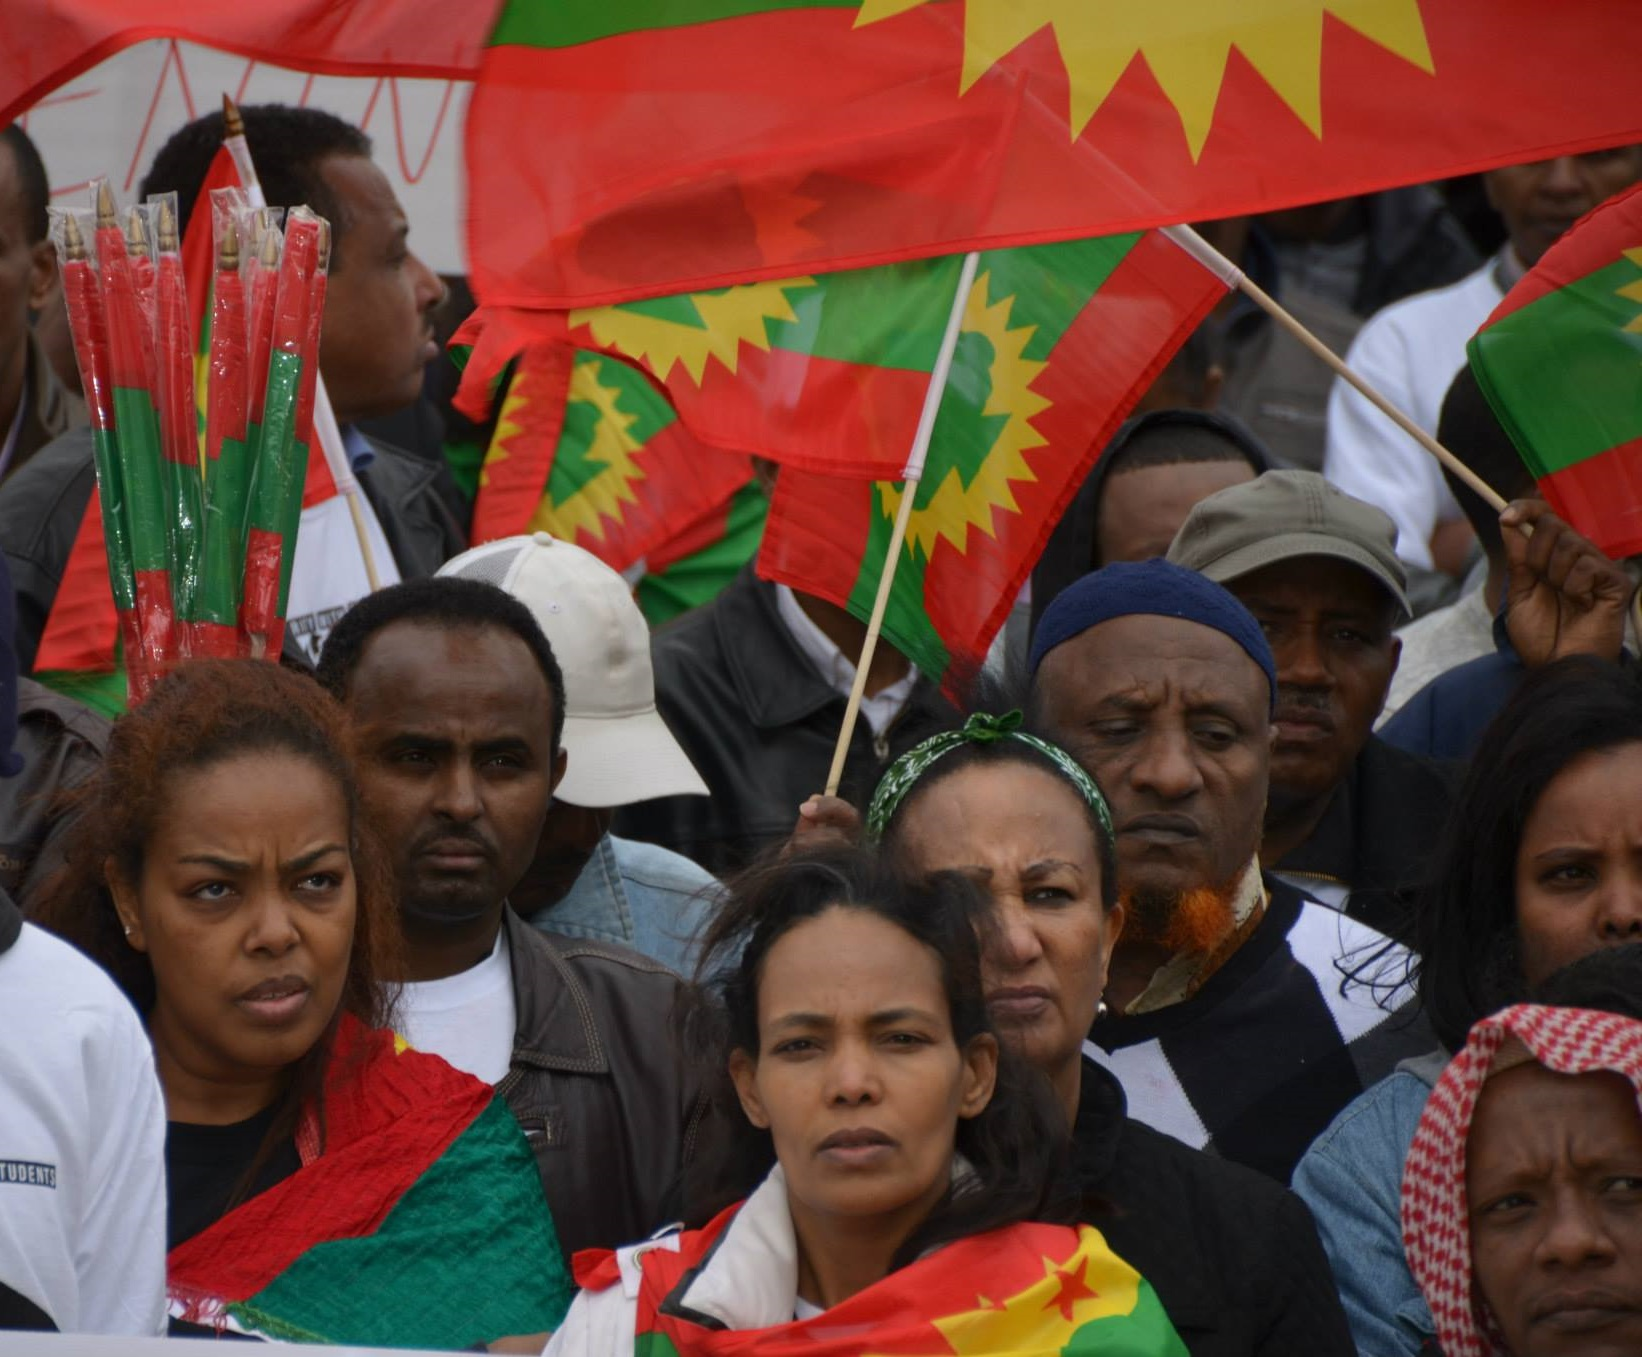 oromo peoples inalienable right - HD1642×1357